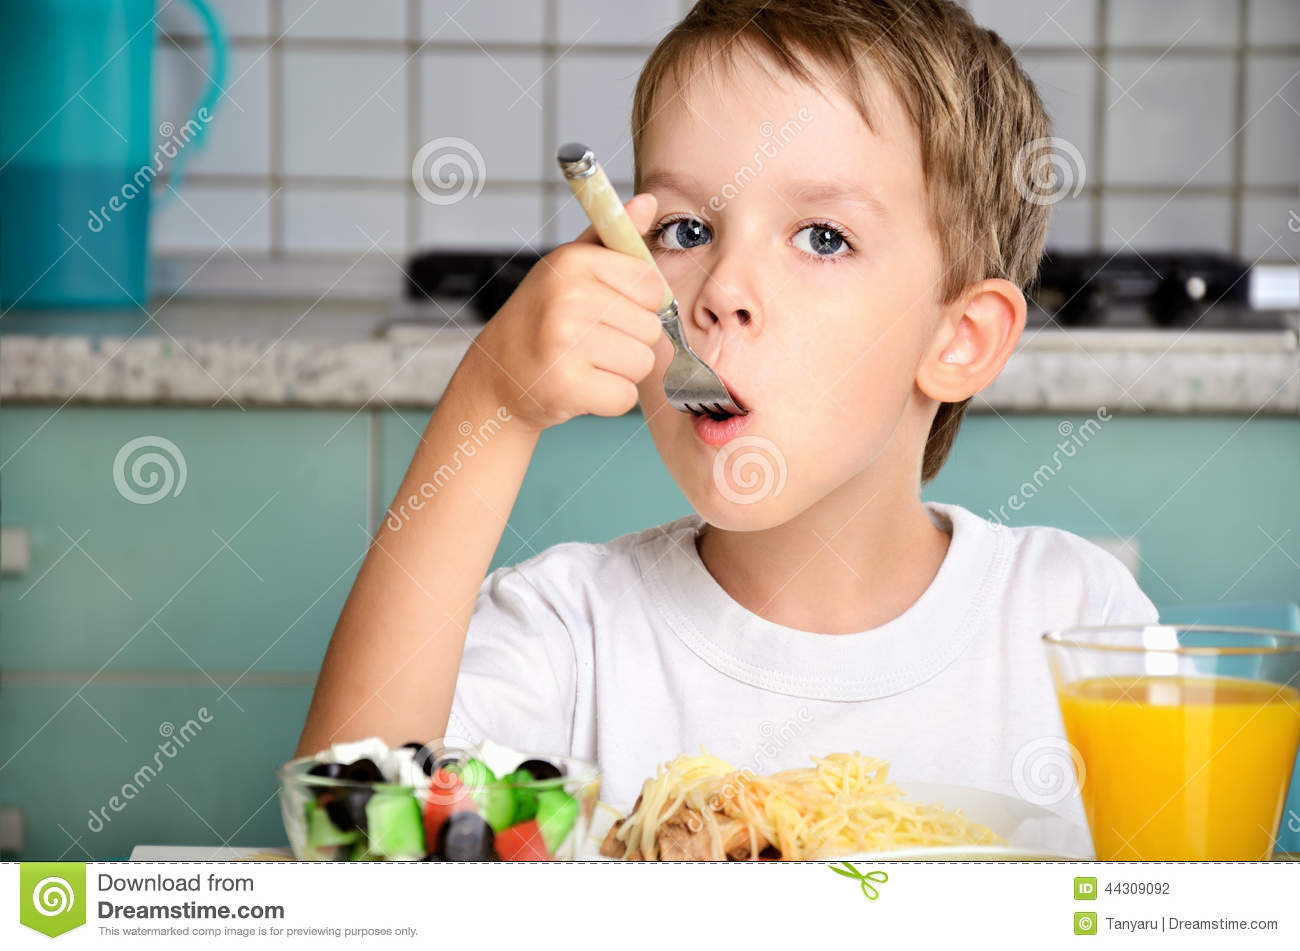 Boy eating with a fork at the table stock photo image for Eating table